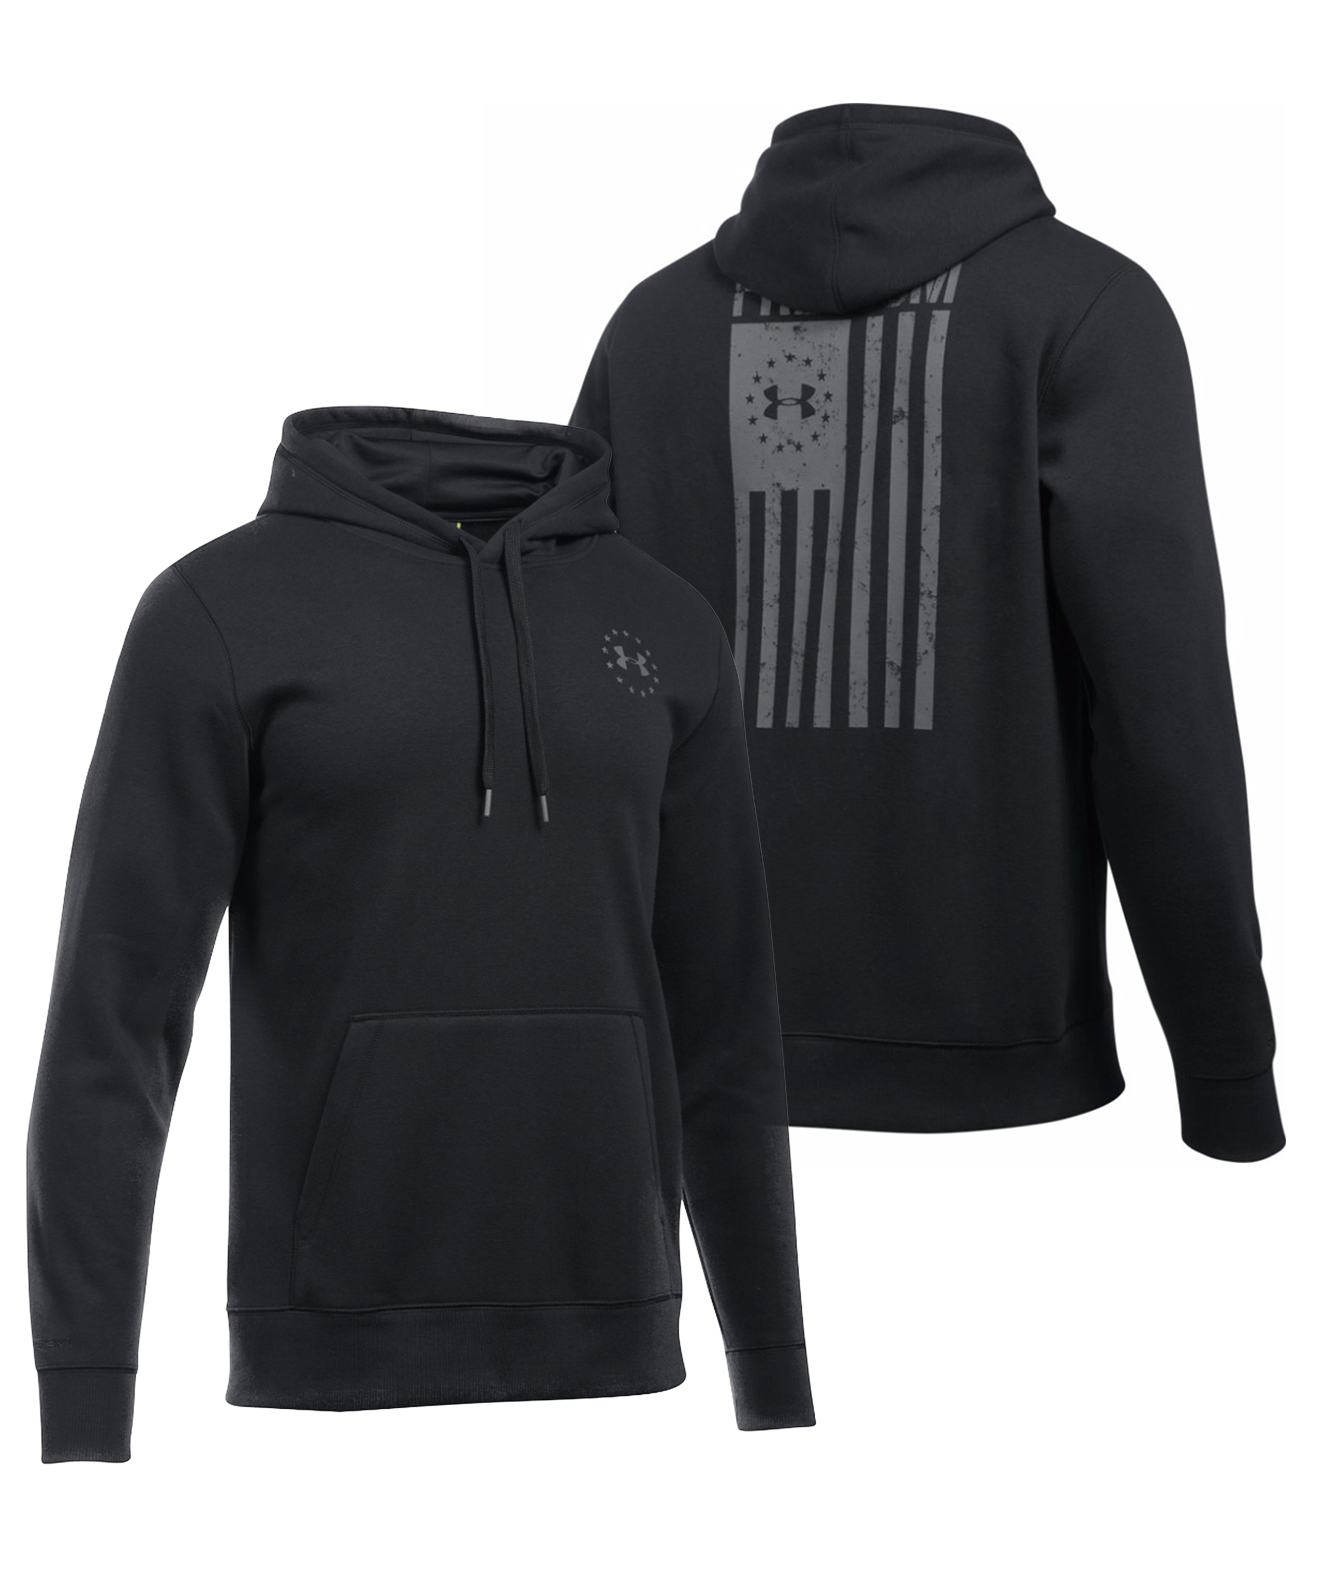 under armour 3xl hoodie. picture 3 of 7 under armour 3xl hoodie 0